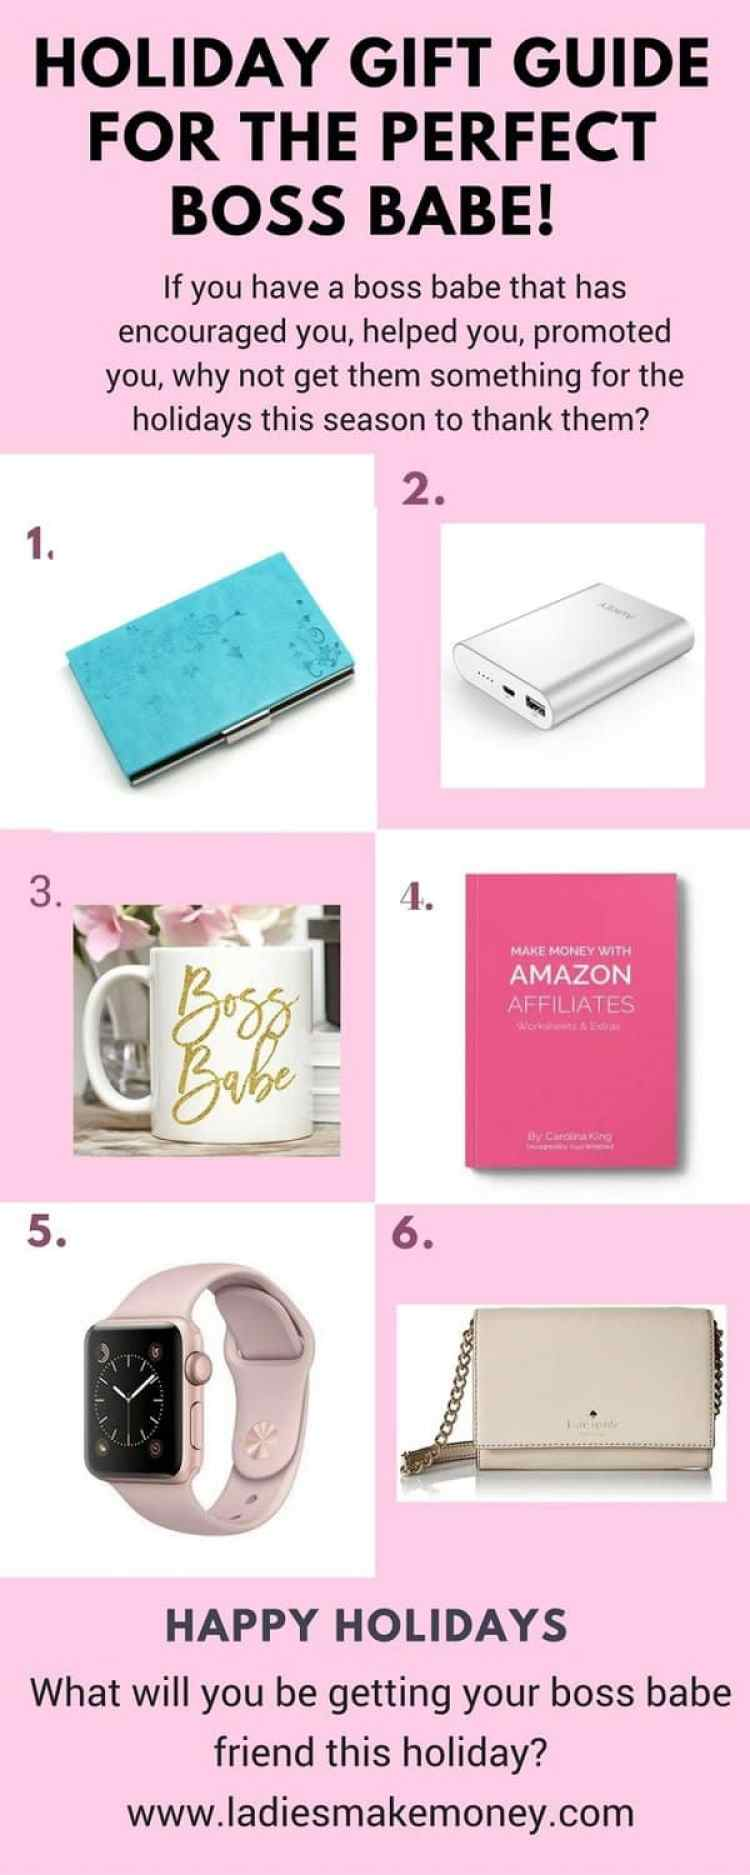 The perfect Gift Guide for the boss babe. Get it for the holidays!